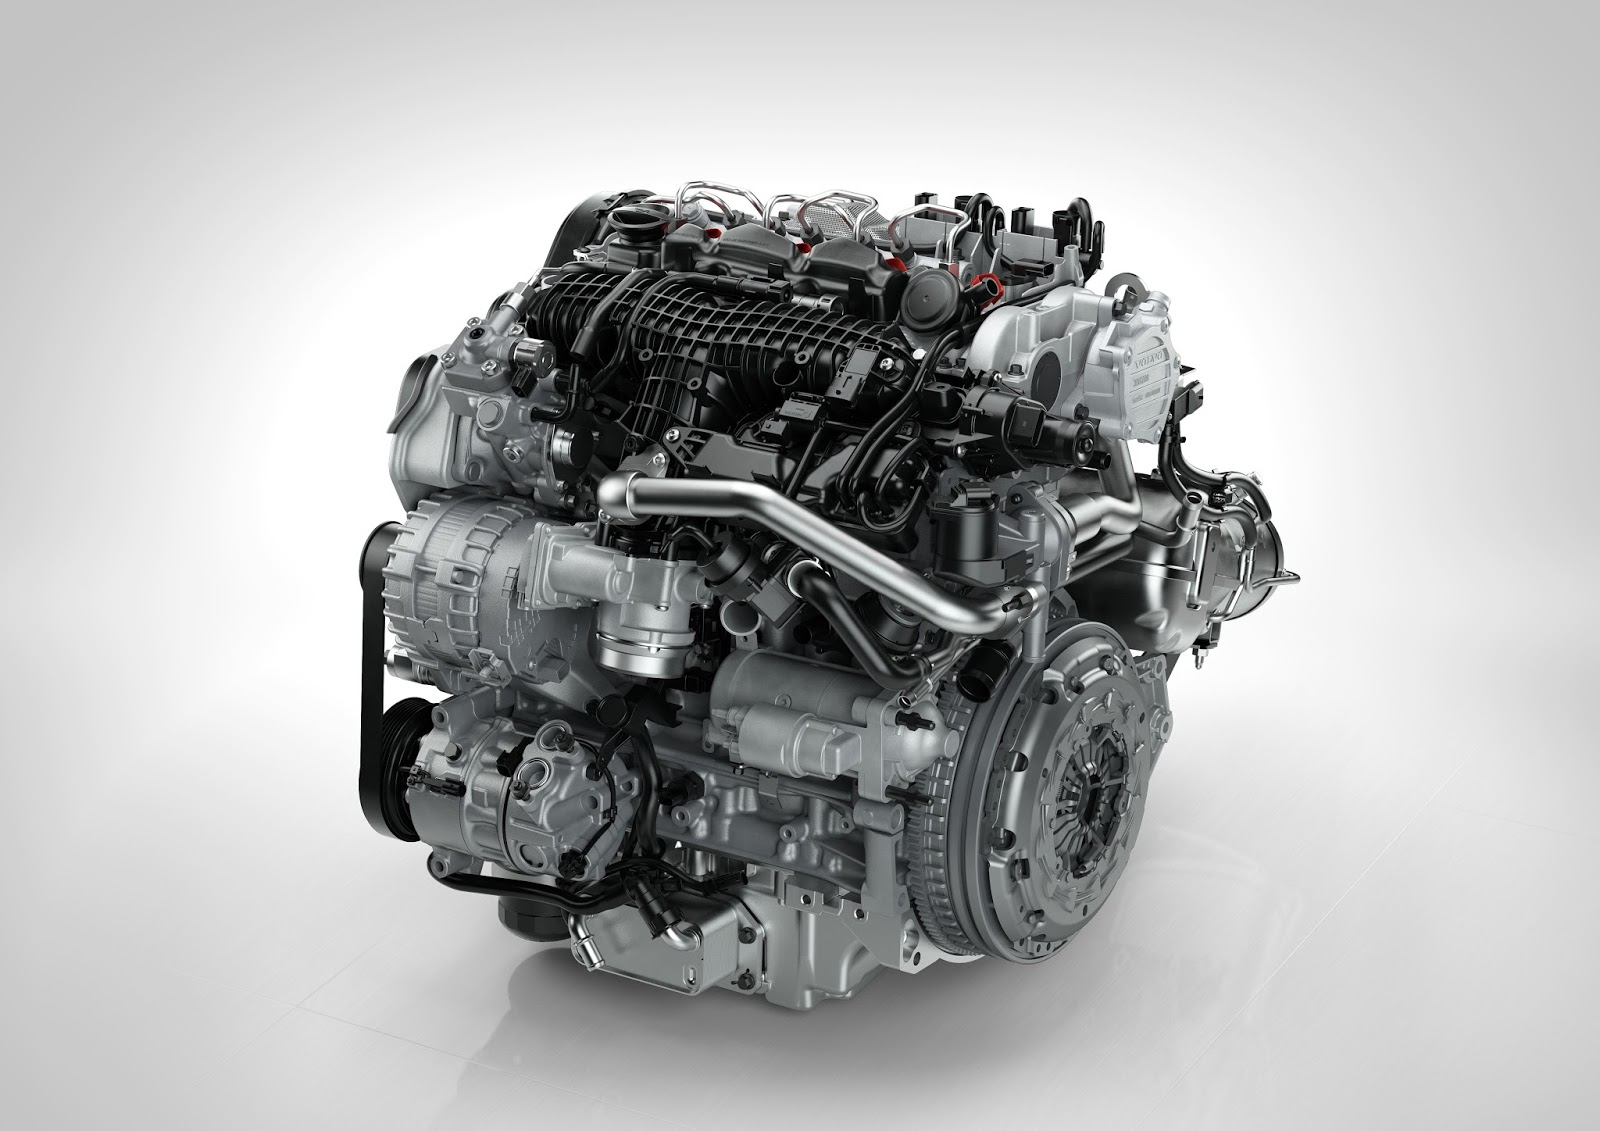 gears intermat engine and penta event highways engines with new volvo up news world